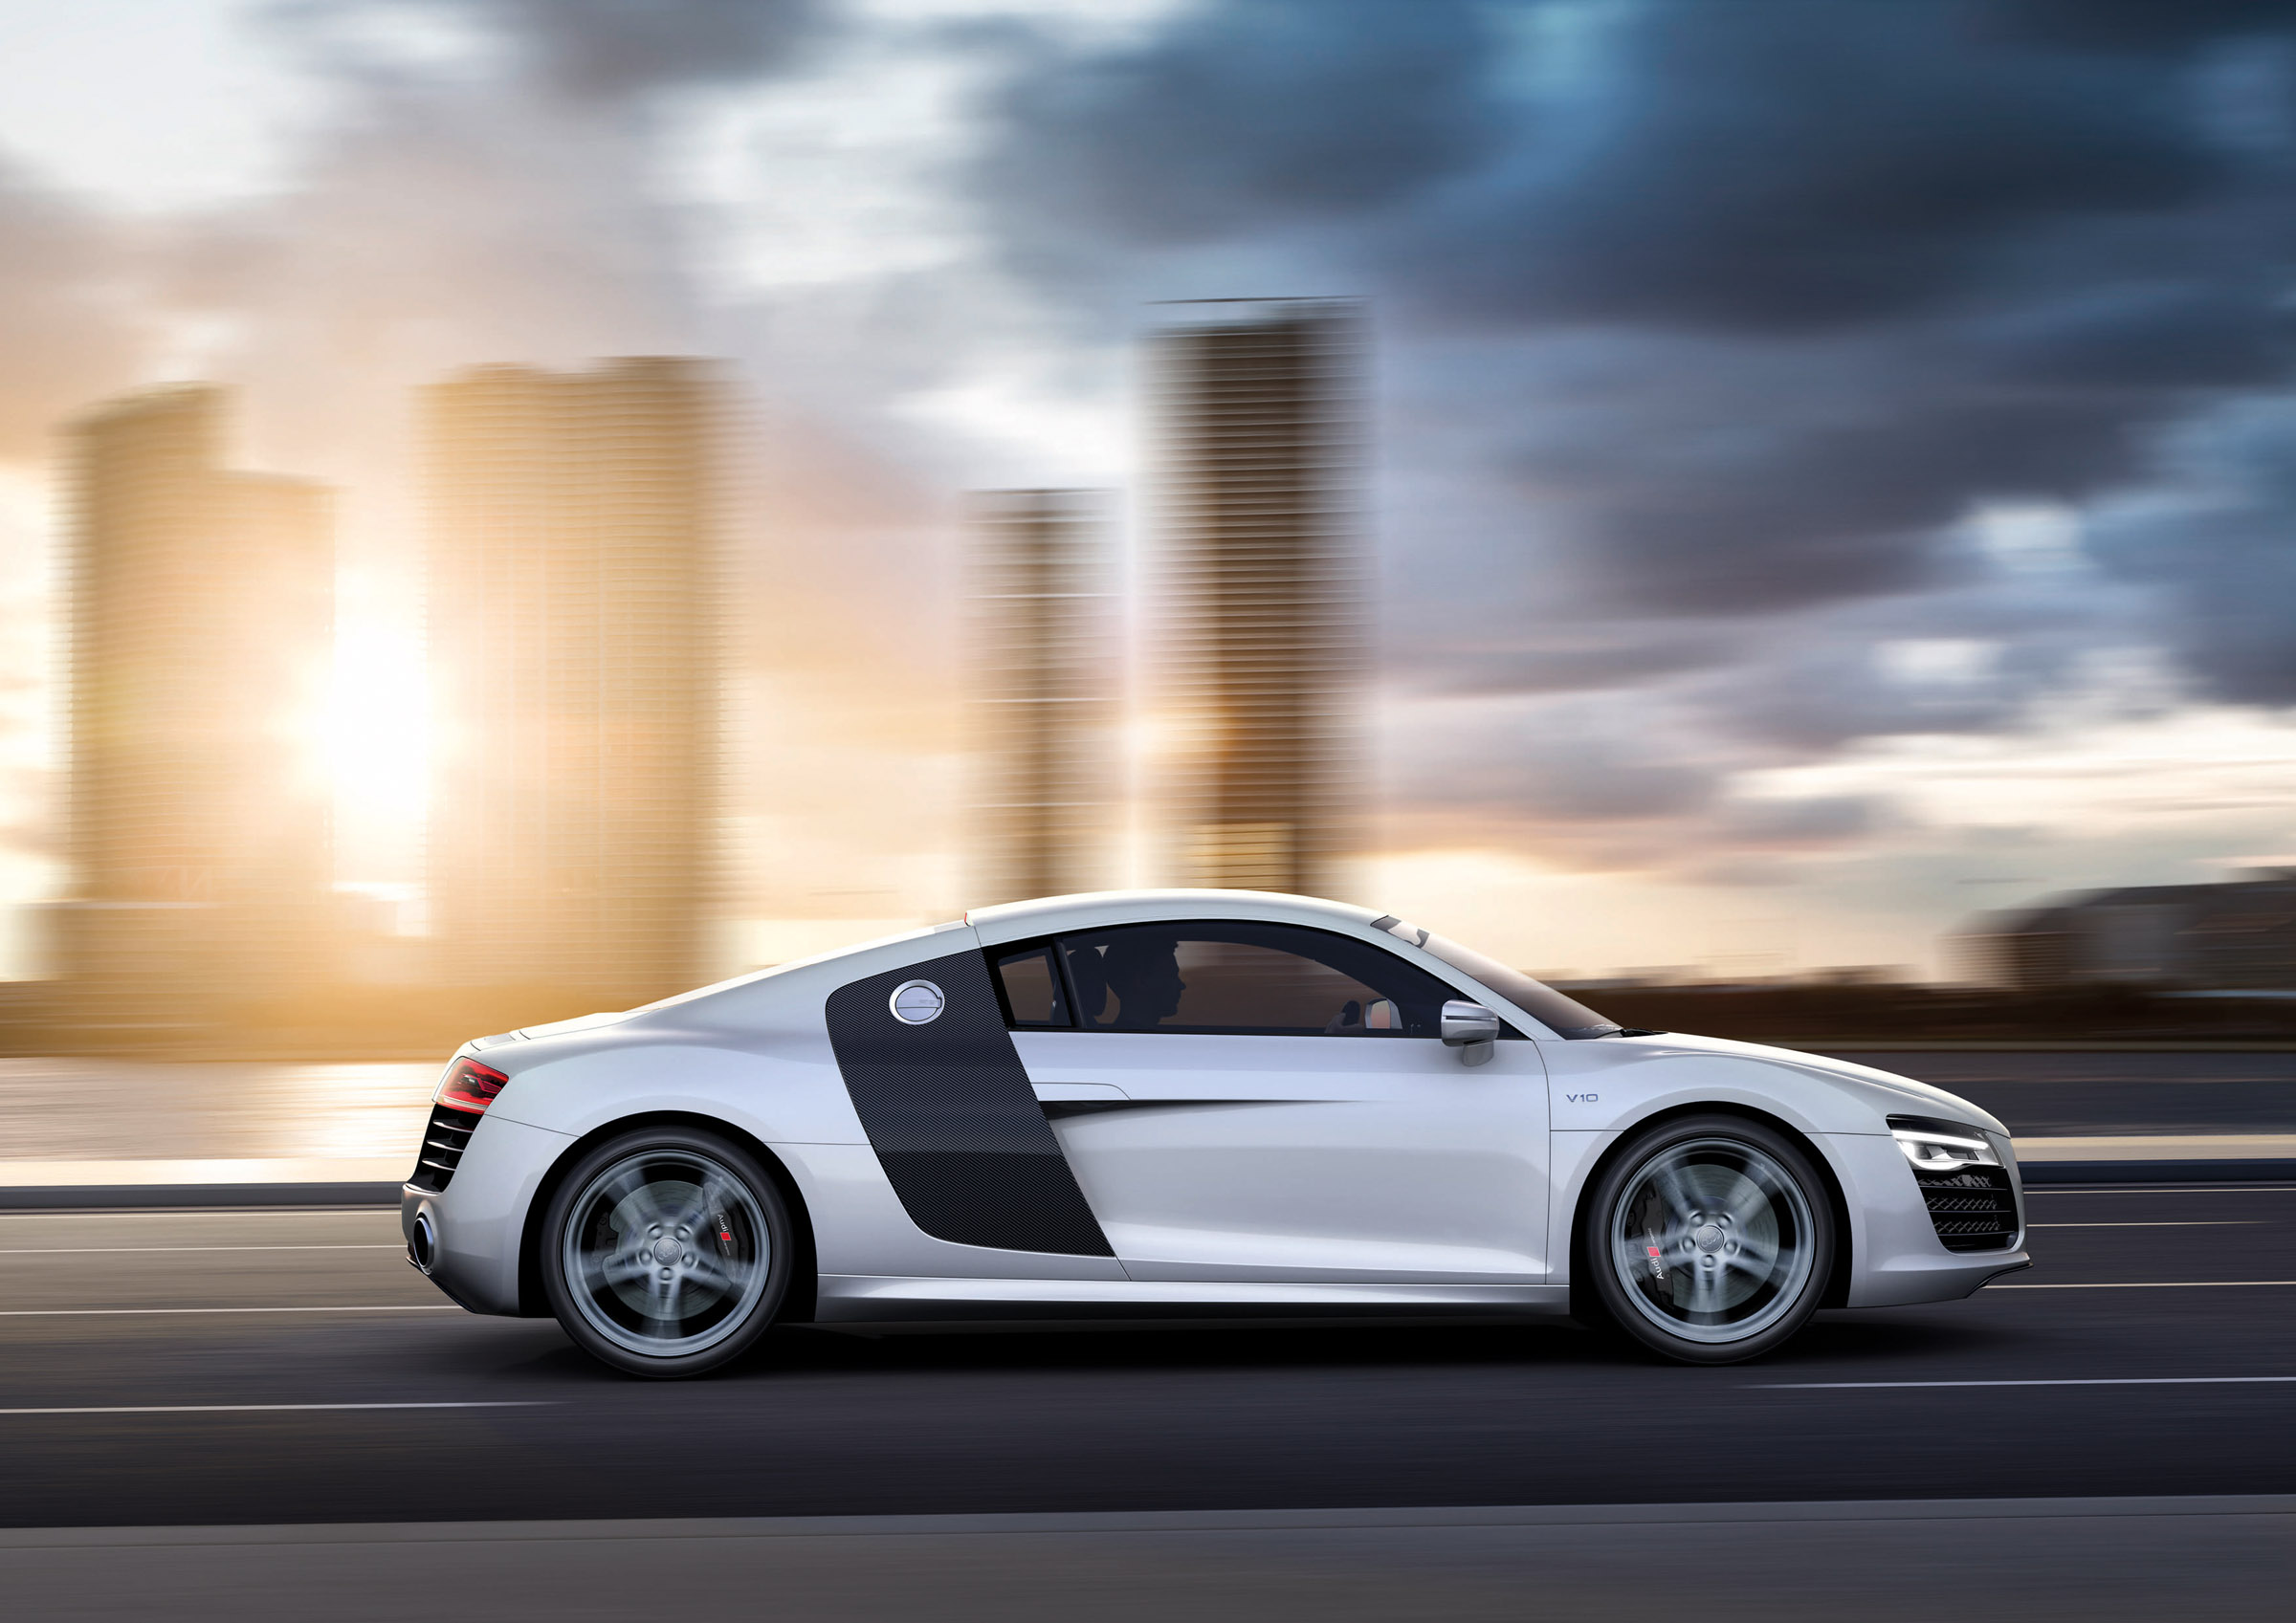 2013 Grey Audi R8 V10 Side View